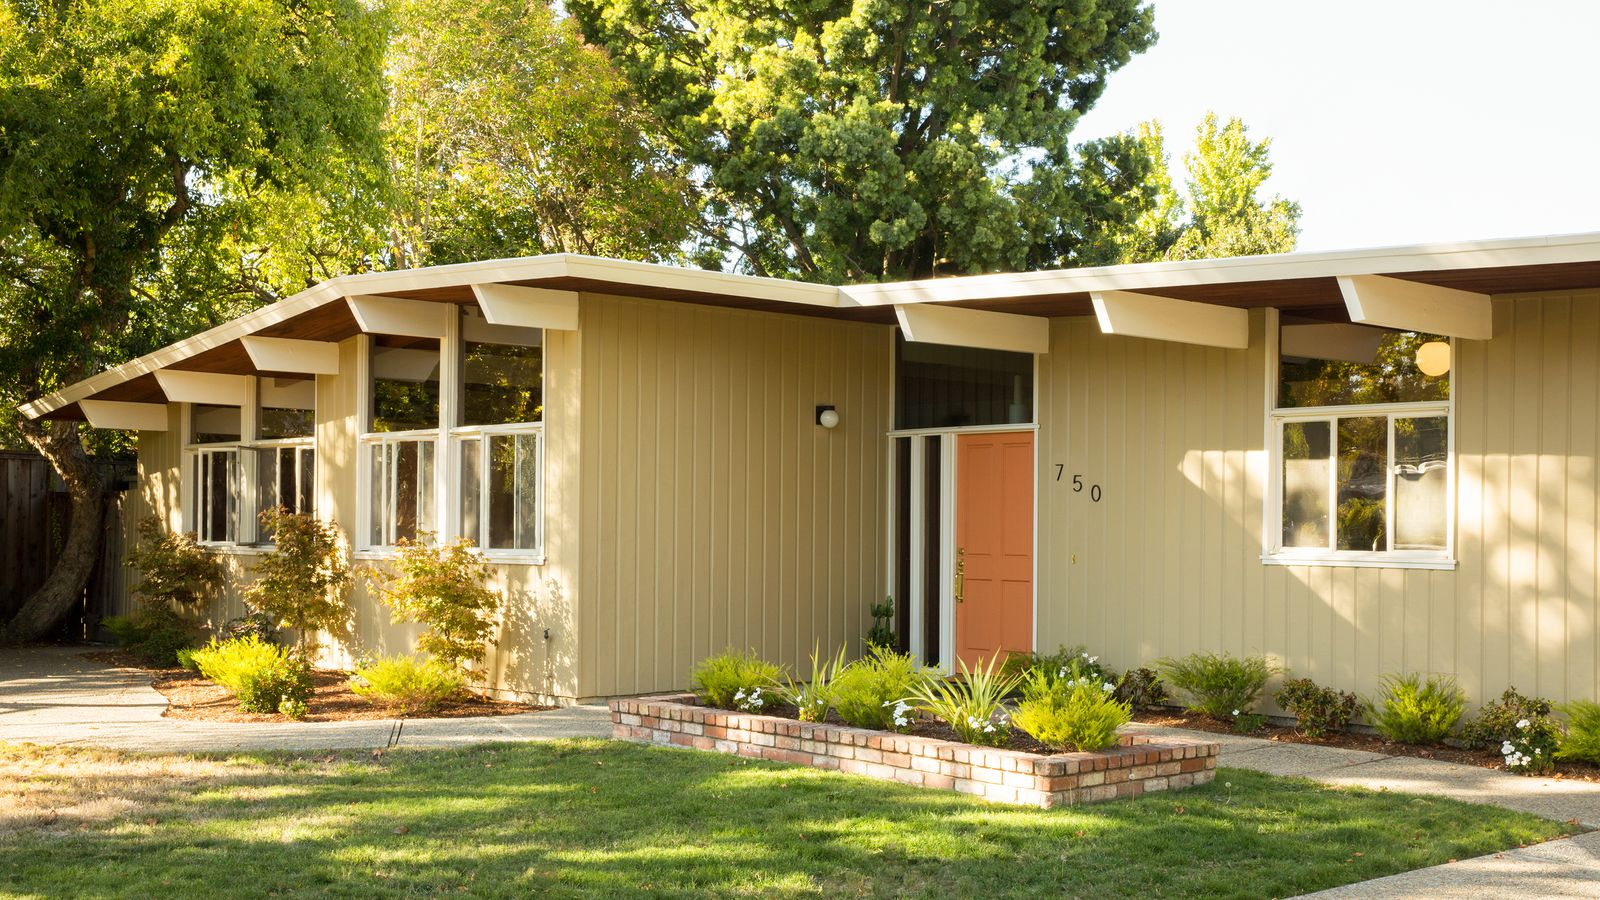 Midcentury modern homes interiors a new facebook group for Building a mid century modern home